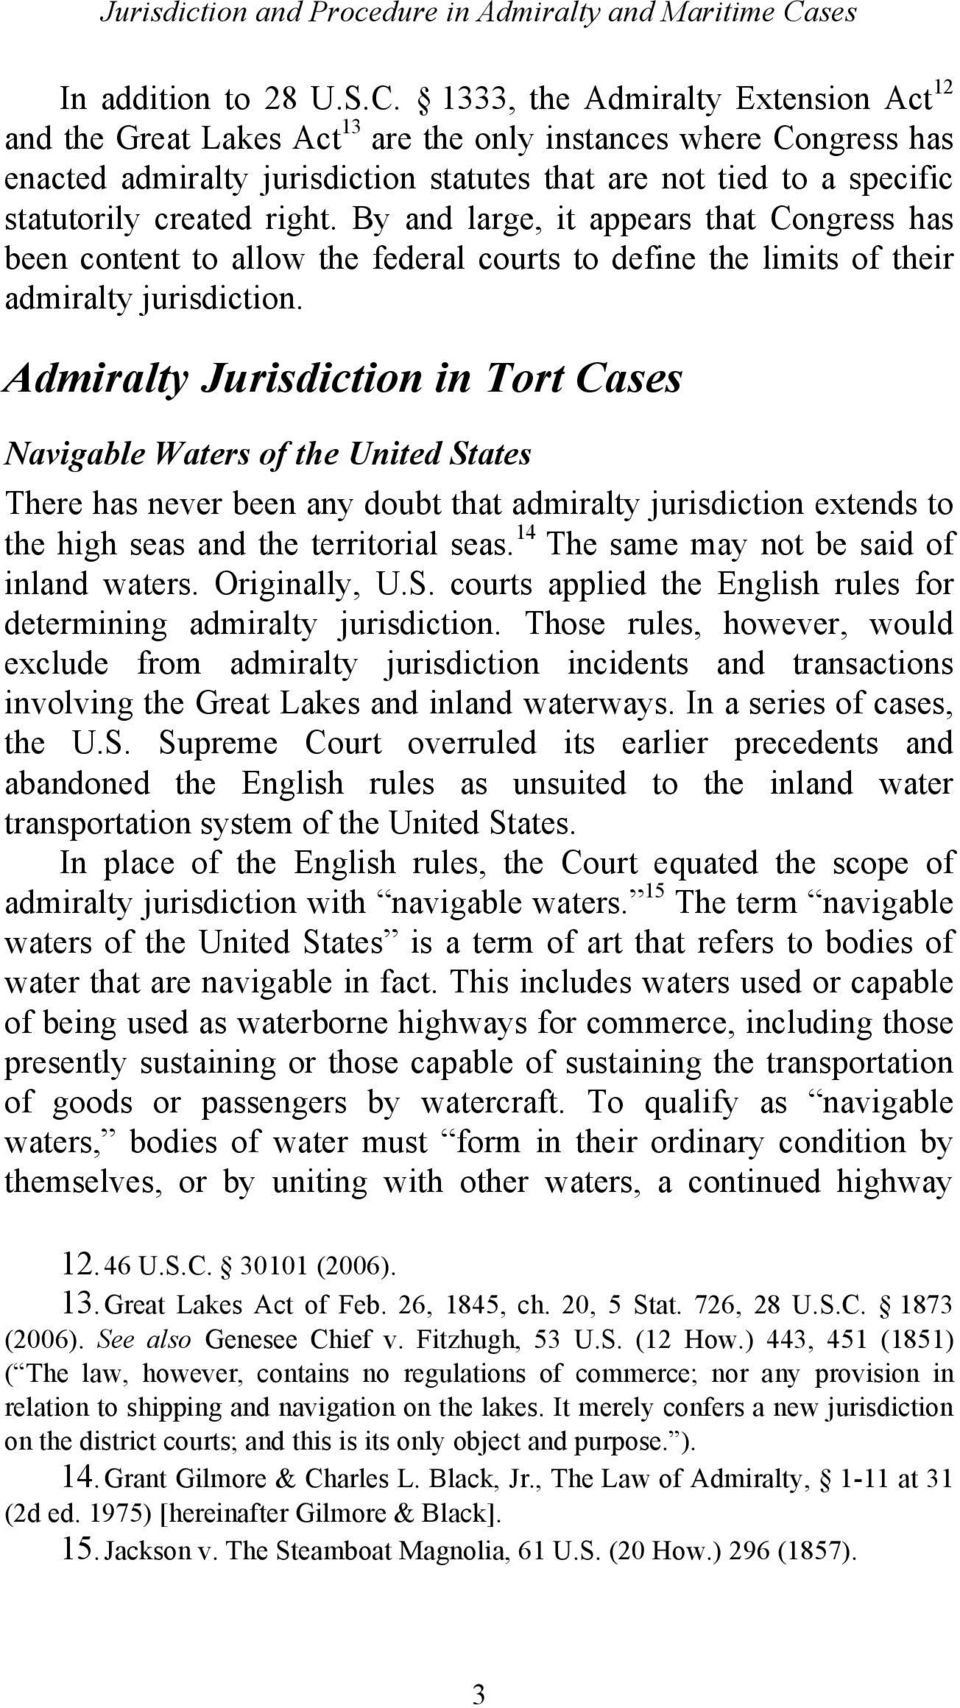 1333, the Admiralty Extension Act 12 and the Great Lakes Act 13 are the only instances where Congress has enacted admiralty jurisdiction statutes that are not tied to a specific statutorily created